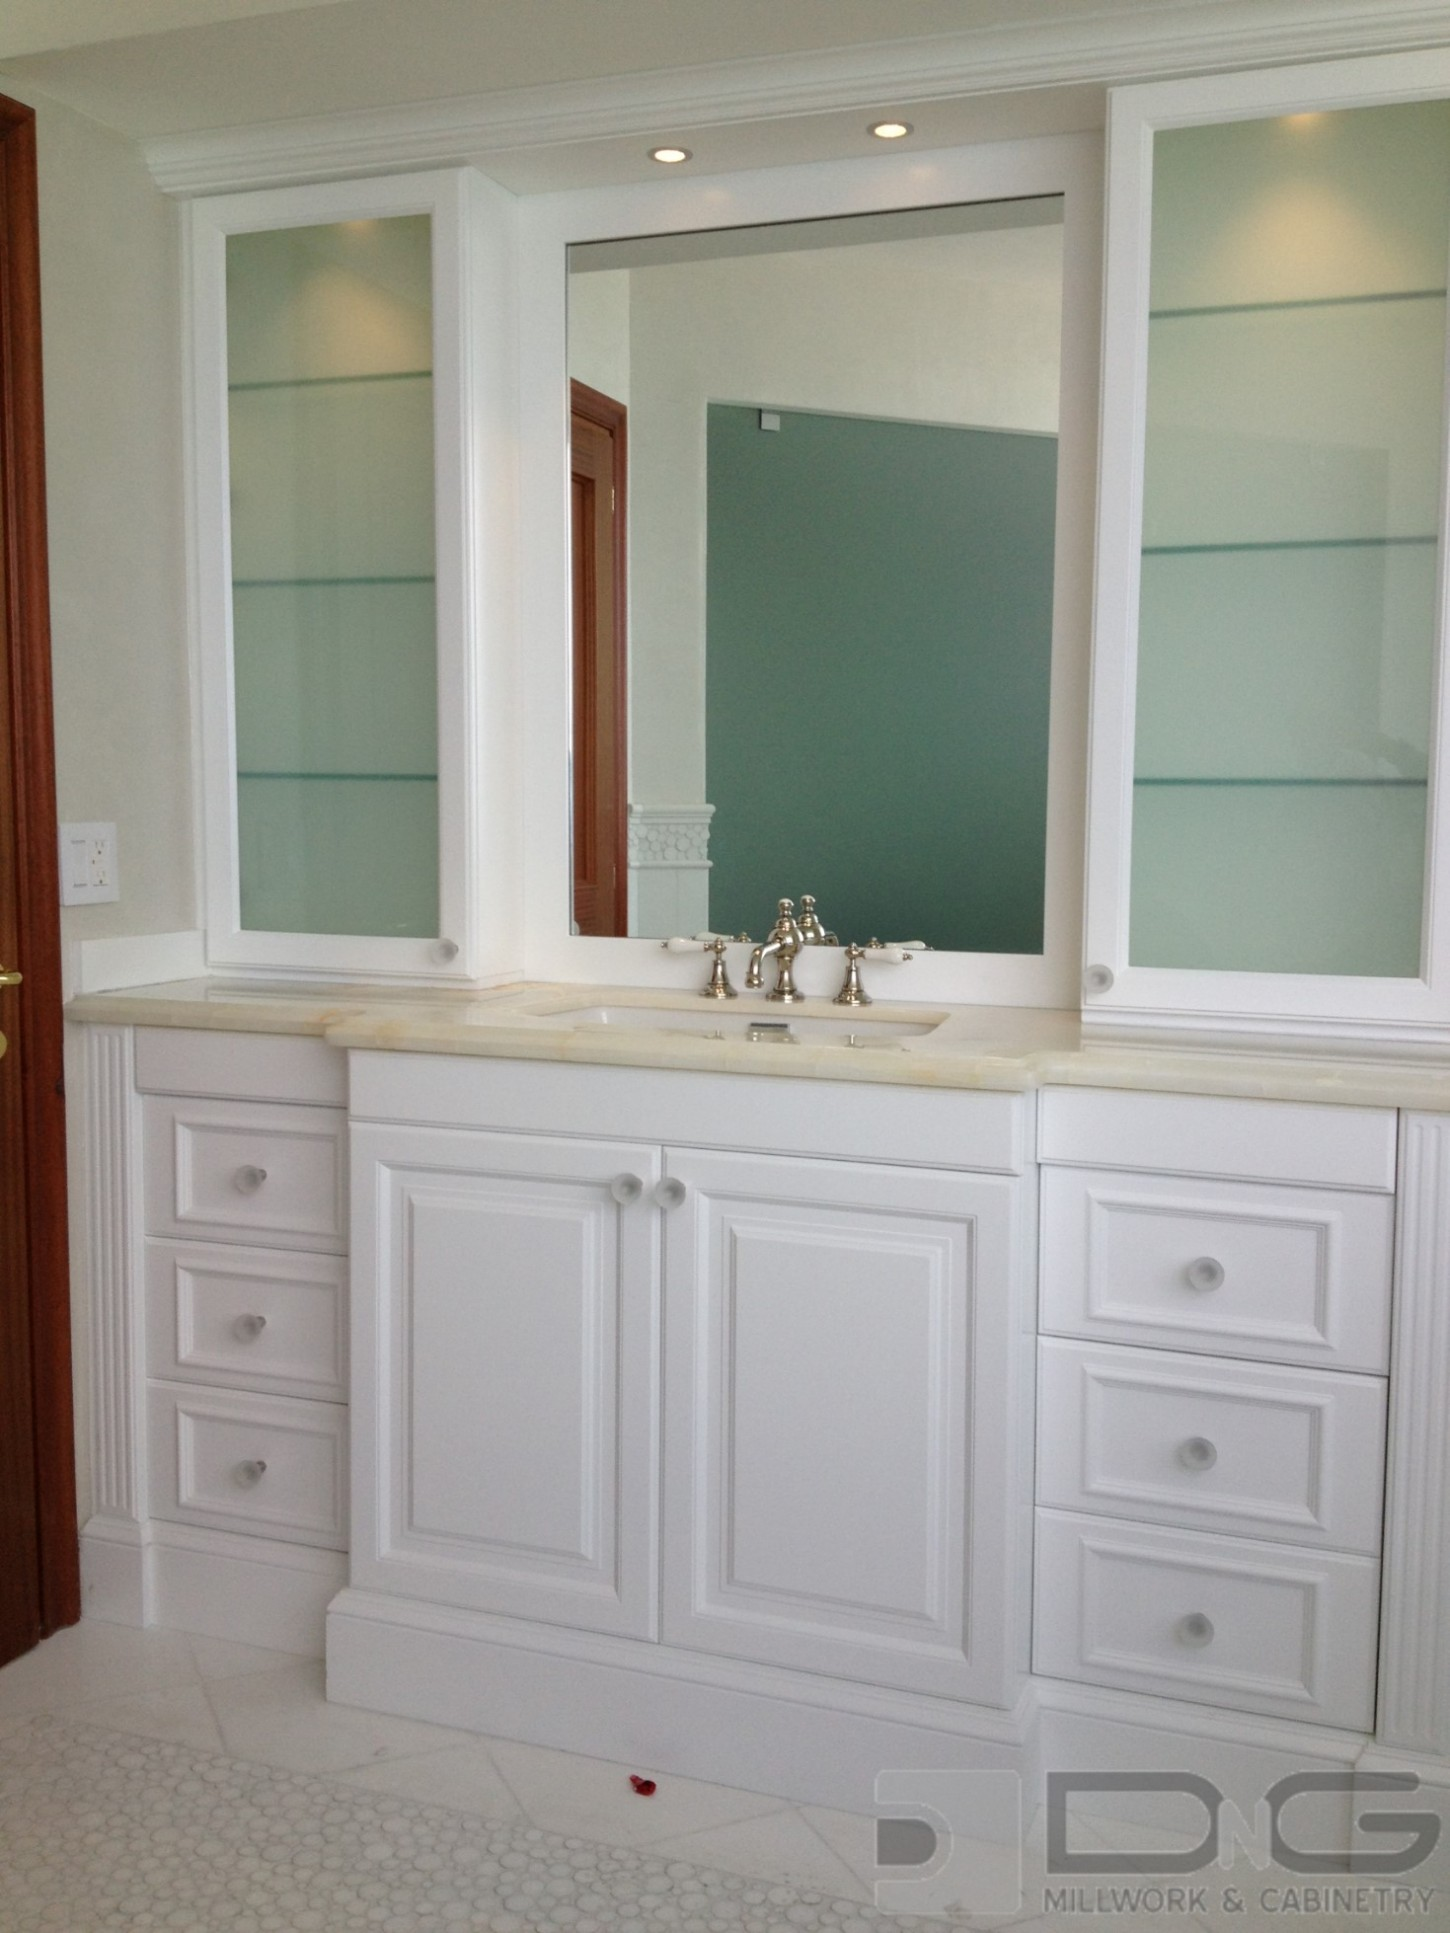 Bathroom Vanity and Storage Cabinets